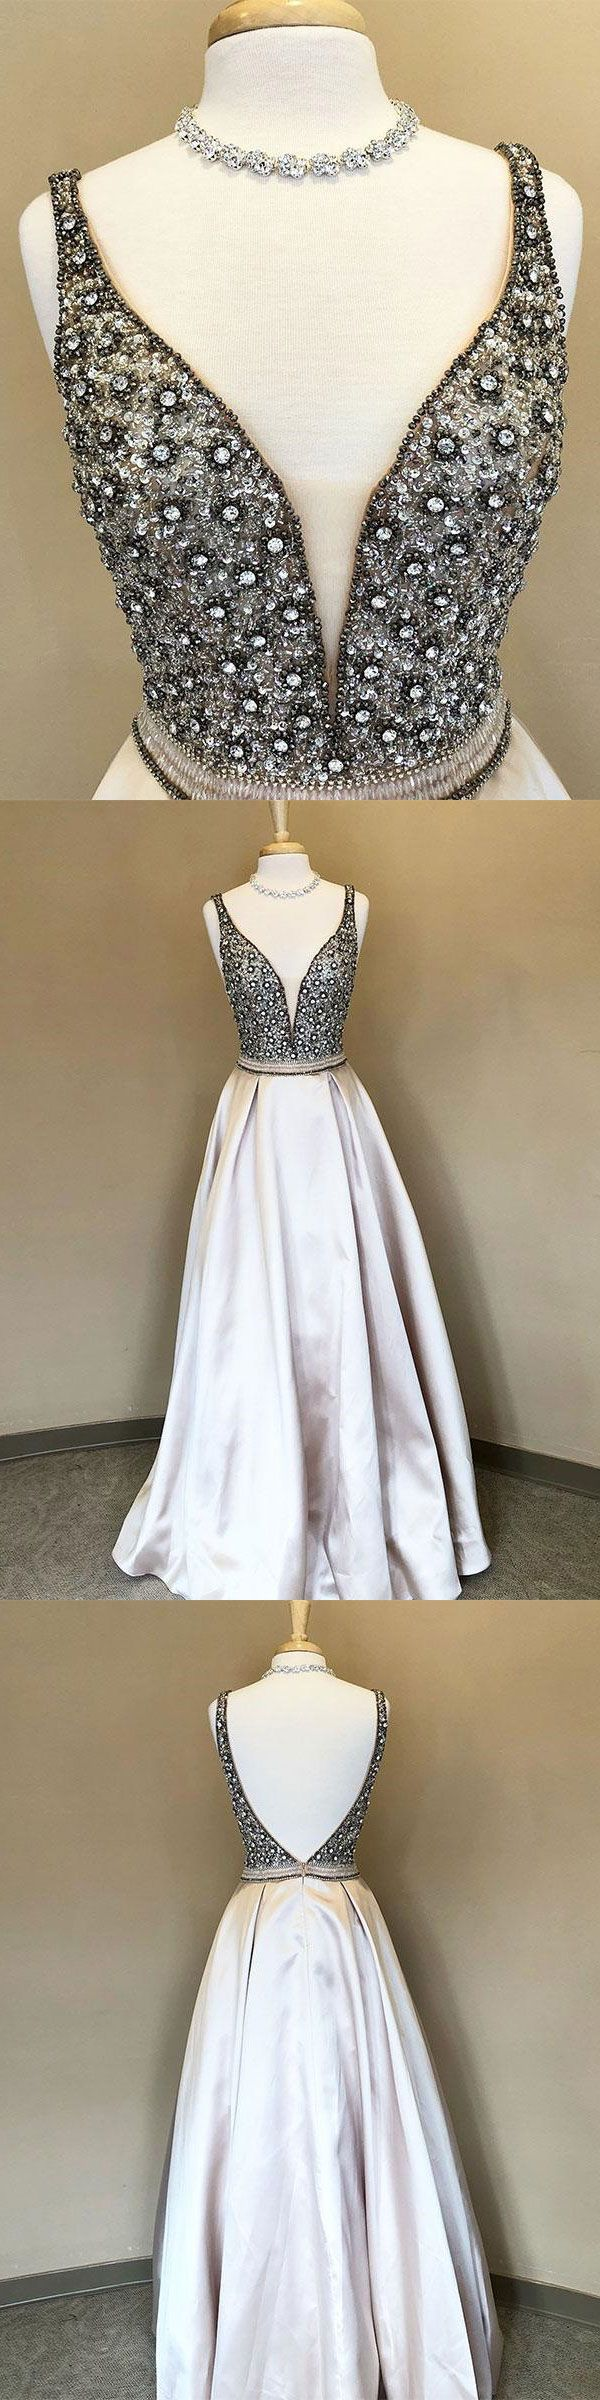 Beaded Long Prom Dresses with V-neck,New Design Prom Dresses for Teens,#sheergirl #prom #pageant